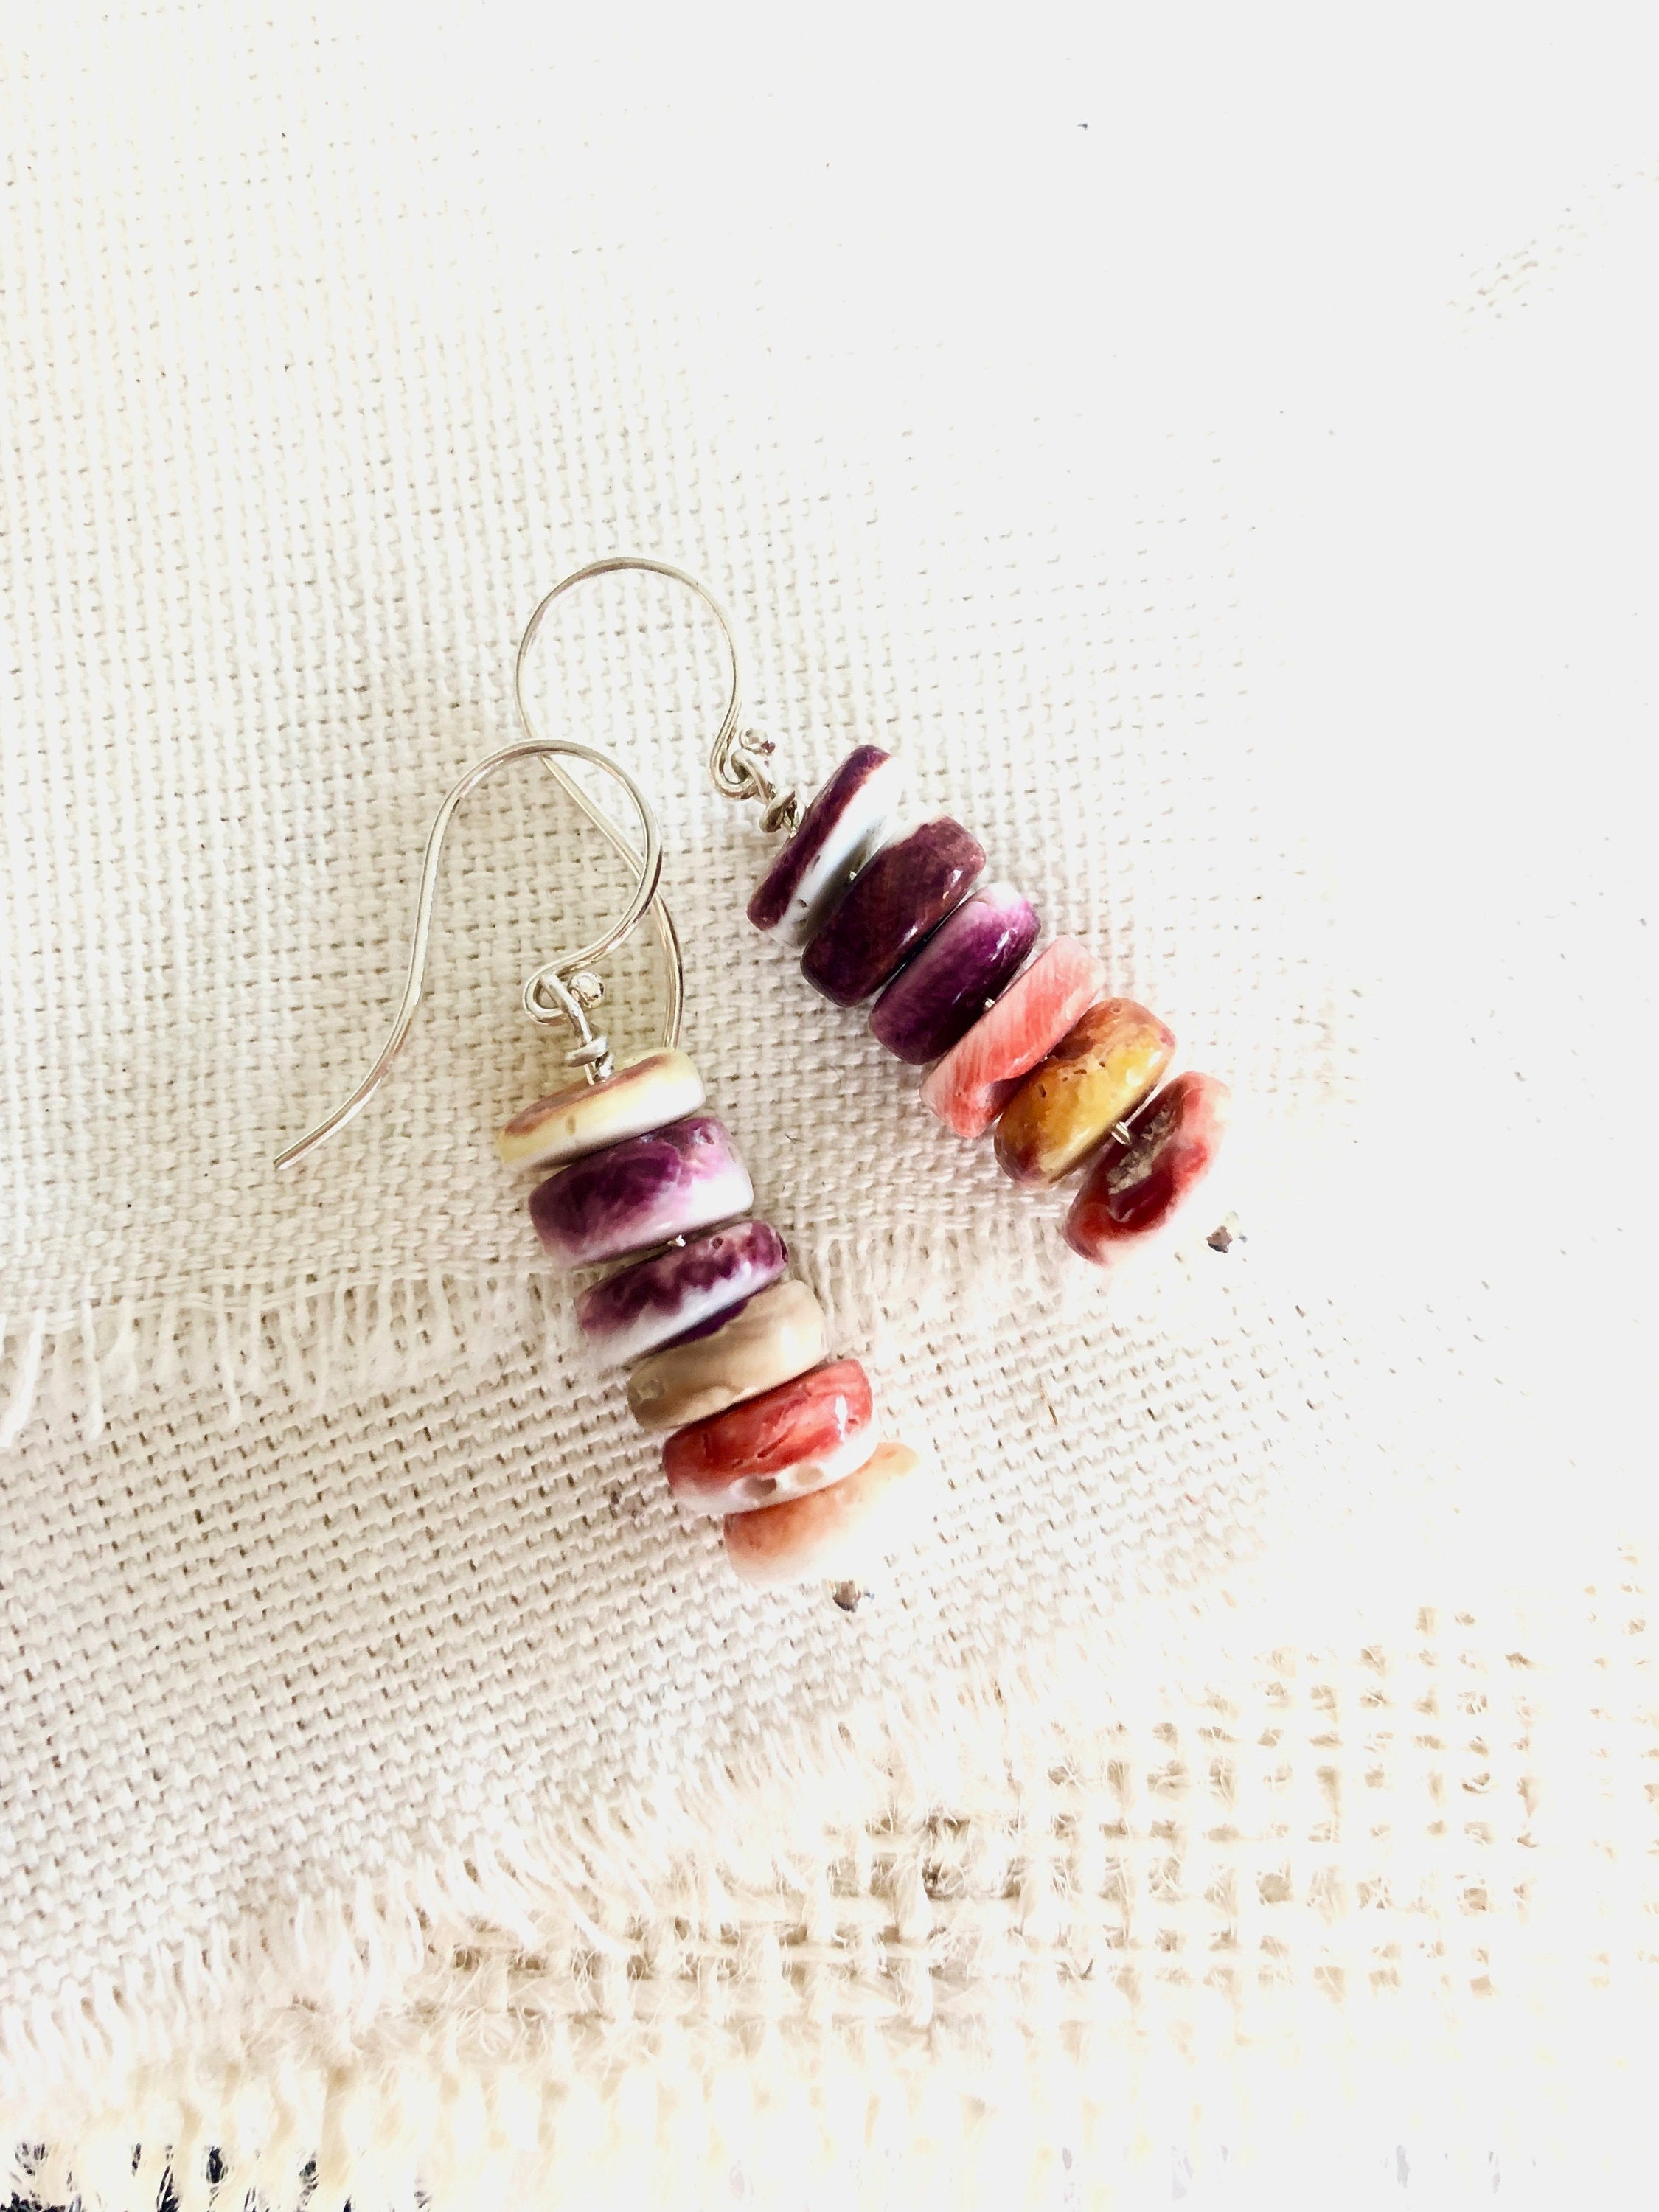 Spiny Oyster Shell Earrings, Spiny Oyster Shell, Spiny Oyster Shell Jewelry, Spiny Oyster Shell Beaded Earrings